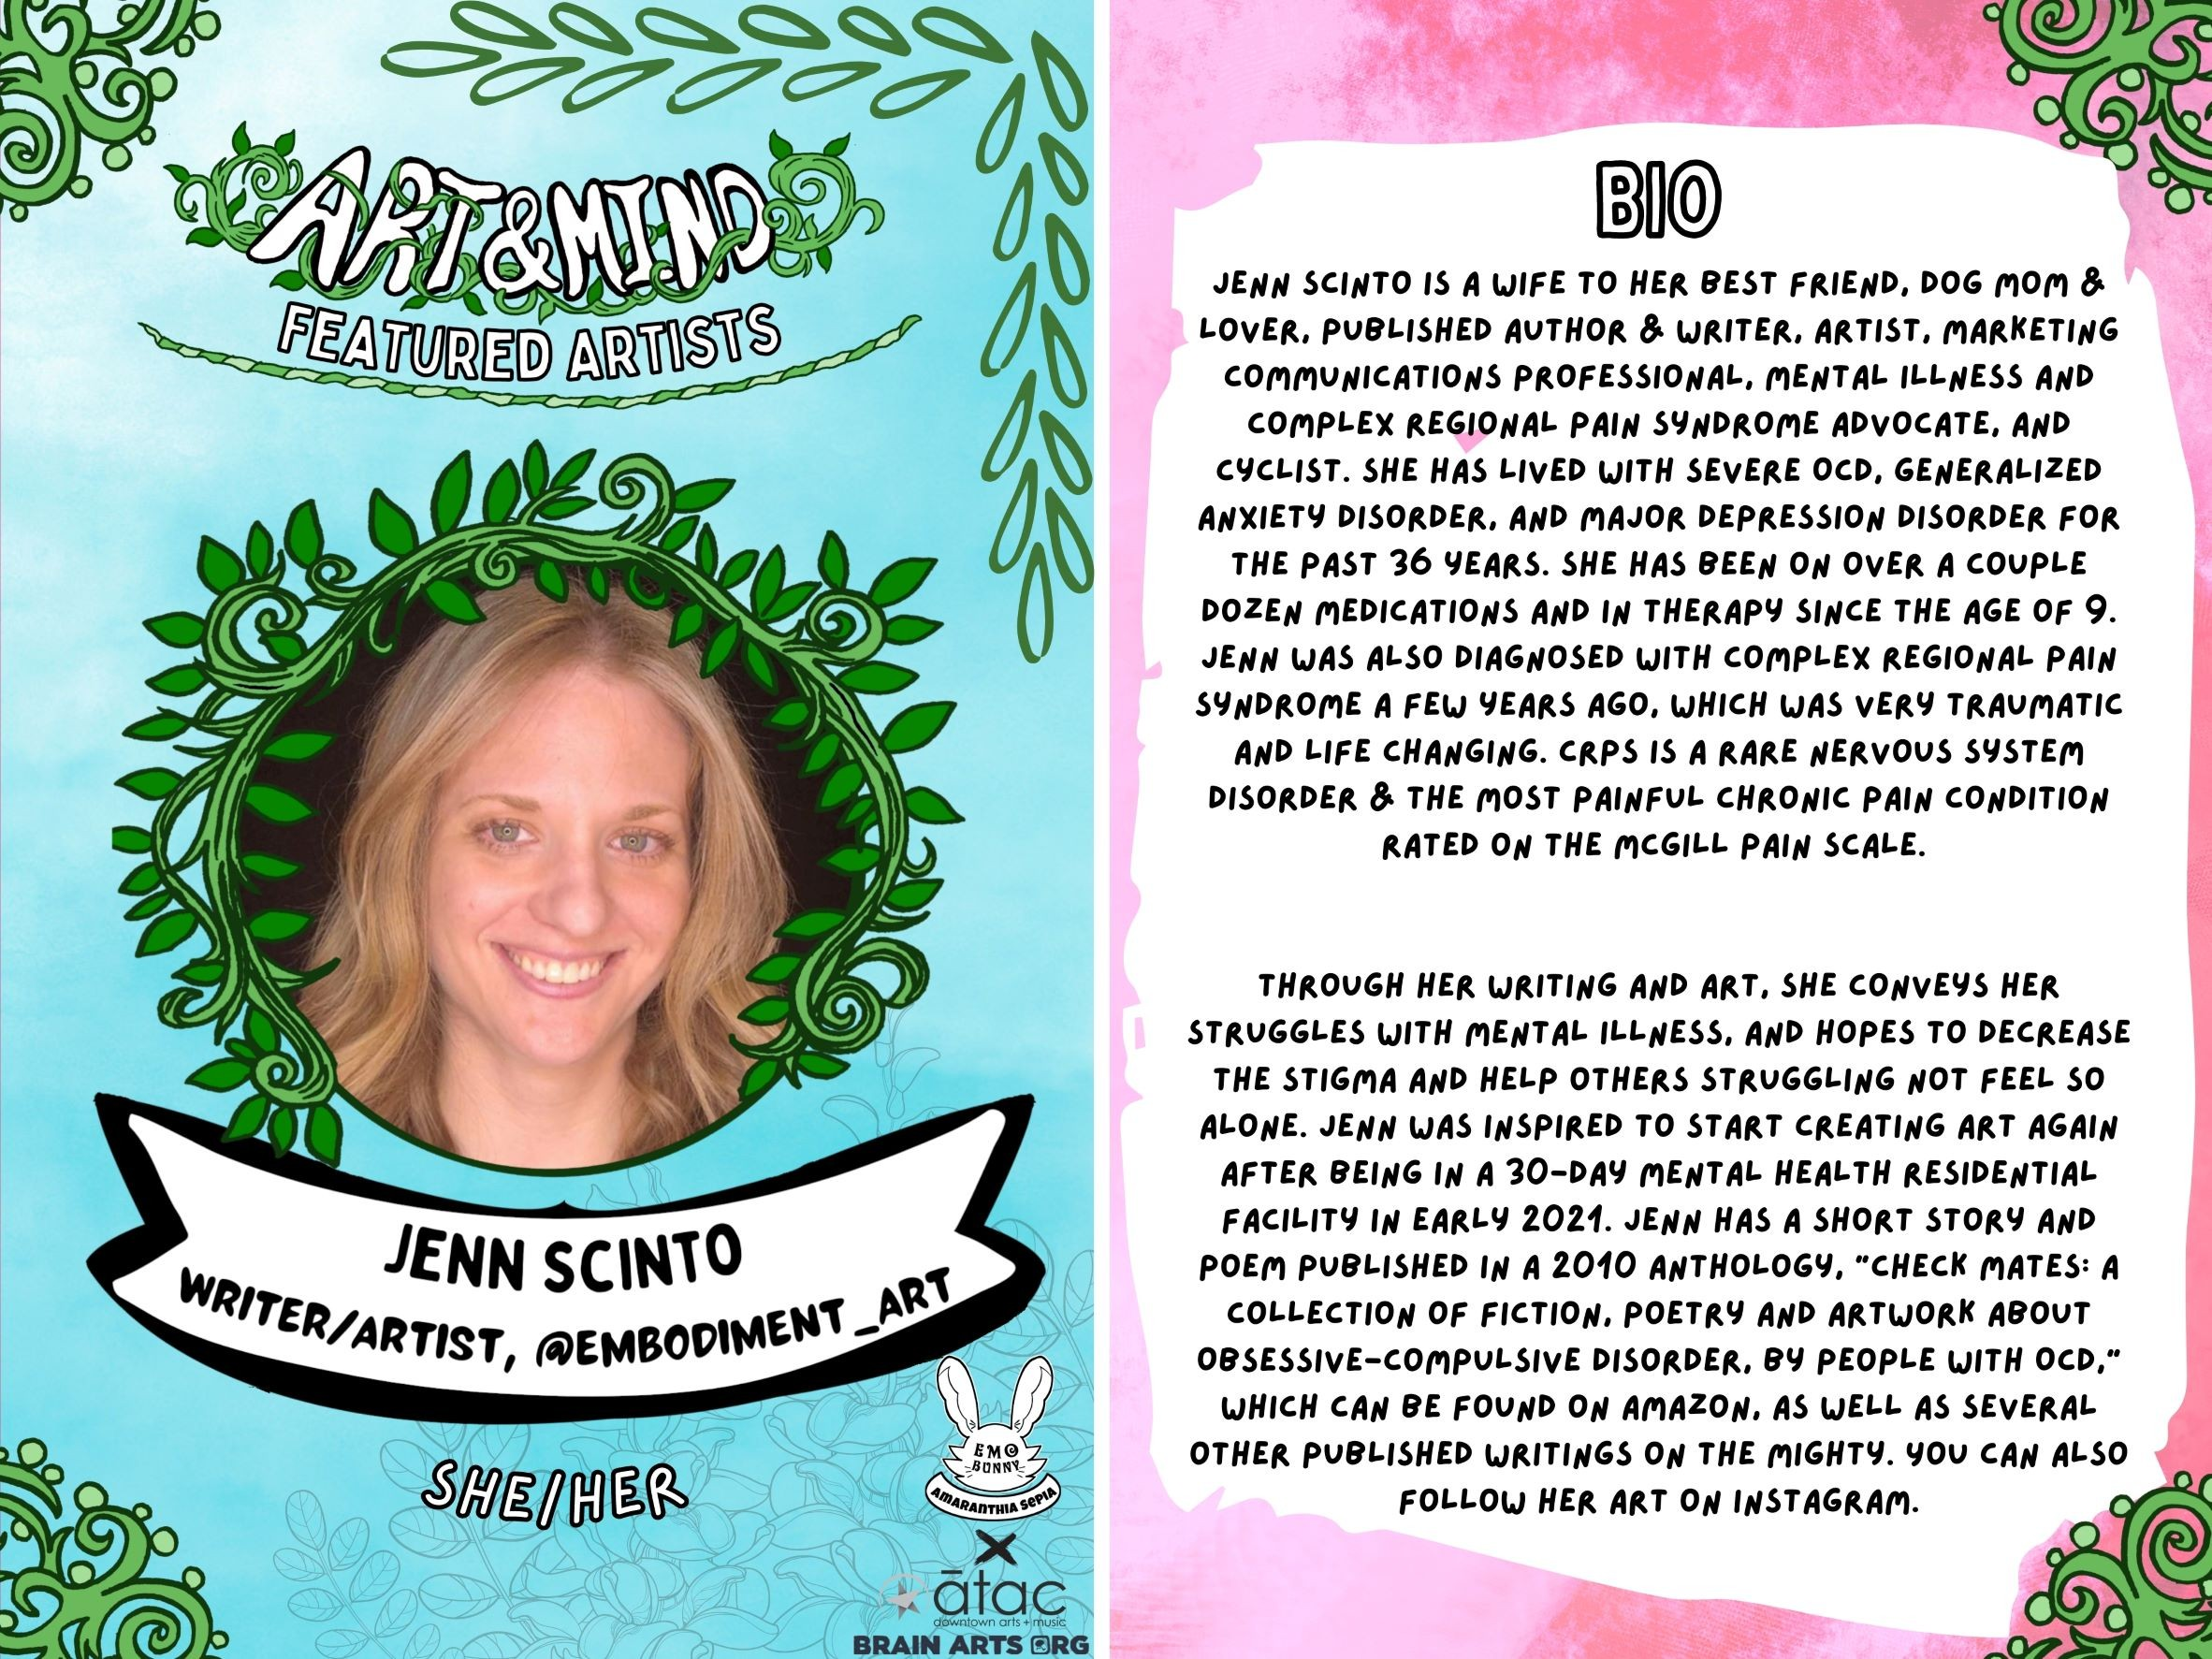 """Featured Artist: Jenn Scinto is a wife to her best friend, dog mom & lover, published author & writer, artist, marketing communications professional, mental illness and Complex Regional Pain Syndrome advocate, and cyclist. She has lived with severe OCD, Generalized Anxiety Disorder, and Major Depression Disorder for the past 36 years. She has been on over a couple dozen medications and in therapy since the age of 9. Jenn was also diagnosed with Complex Regional Pain Syndrome a few years ago, which was very traumatic and life changing. CRPS is a rare nervous system disorder & the most painful chronic pain condition rated on the McGill Pain Scale.    Through her writing and art, she conveys her struggles with mental illness, and hopes to decrease the stigma and help others struggling not feel so alone. Jenn was inspired to start creating art again after being in a 30-day mental health residential facility in early 2021. Jenn has a short story and poem published in a 2010 anthology, """"Check Mates: A Collection of Fiction, Poetry and Artwork about Obsessive-Compulsive Disorder, by People with OCD,"""" which can be found on Amazon, as well as several other published writings on The Mighty. You can also follow her art on Instagram. @Embodiment_Art"""